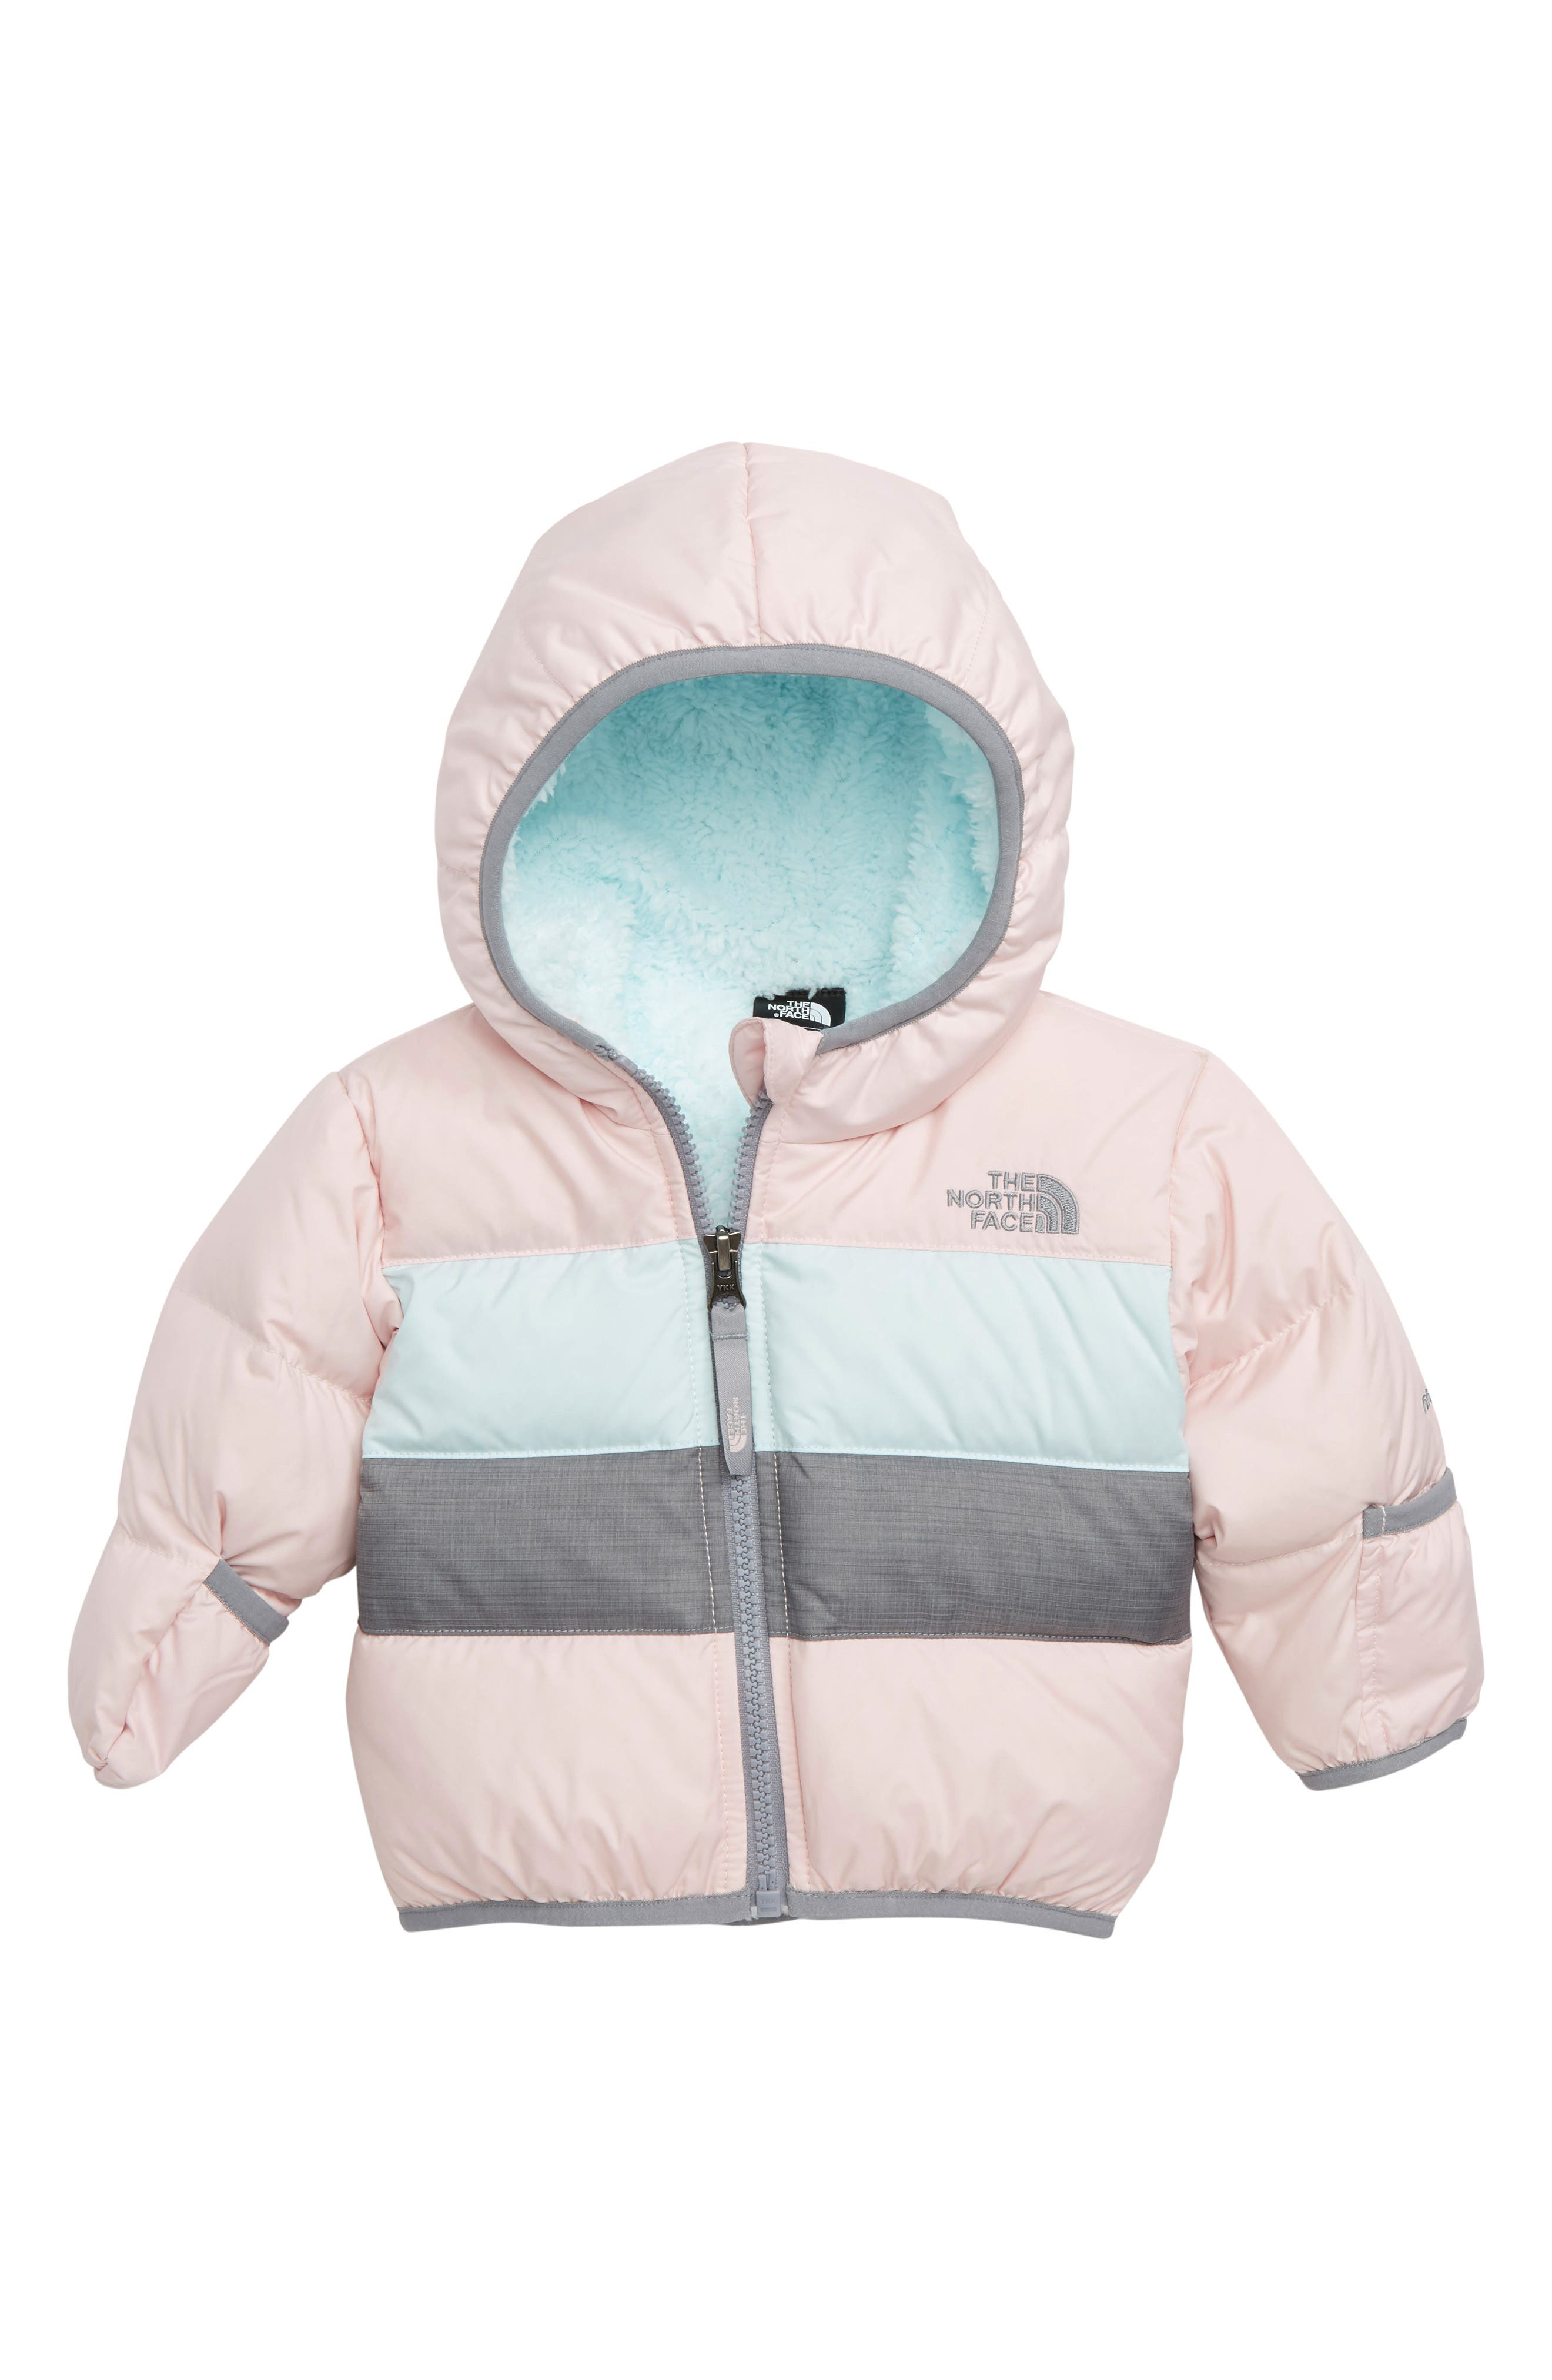 Moondoggy 2.0 Water Repellent Down Jacket,                         Main,                         color, PURDY PINK